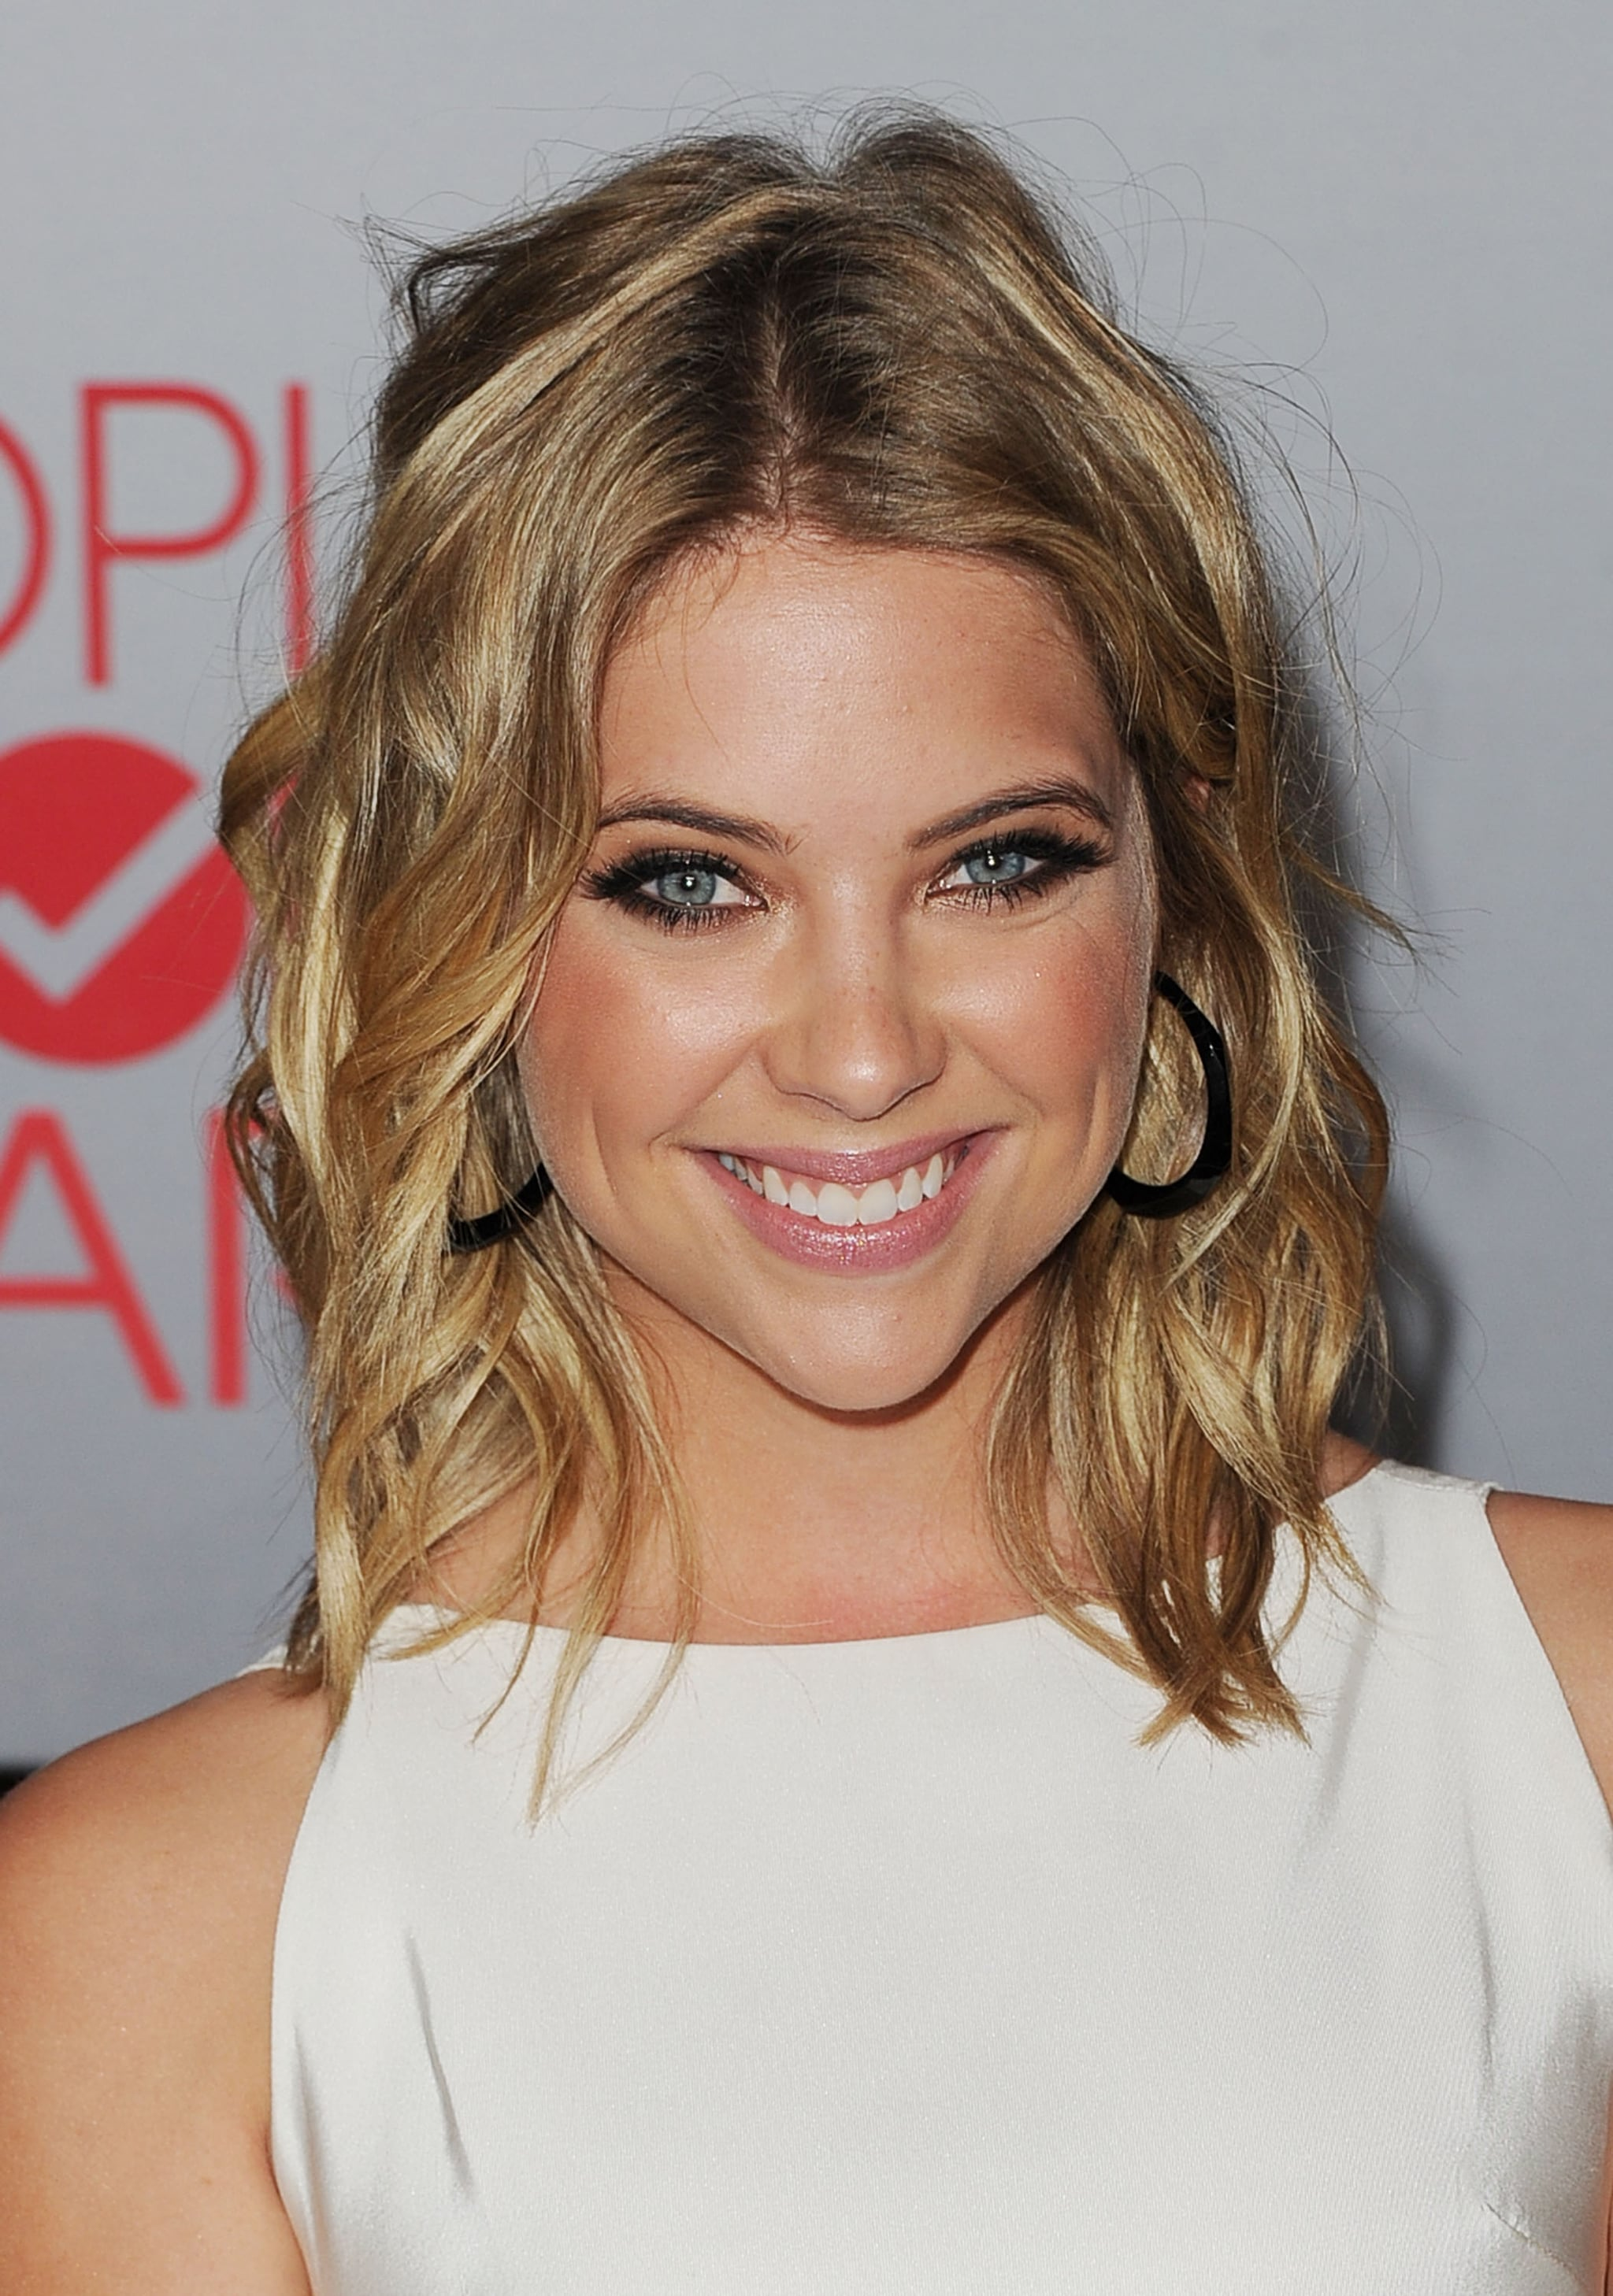 Ashley Benson was happy at the People's Choice Awards.